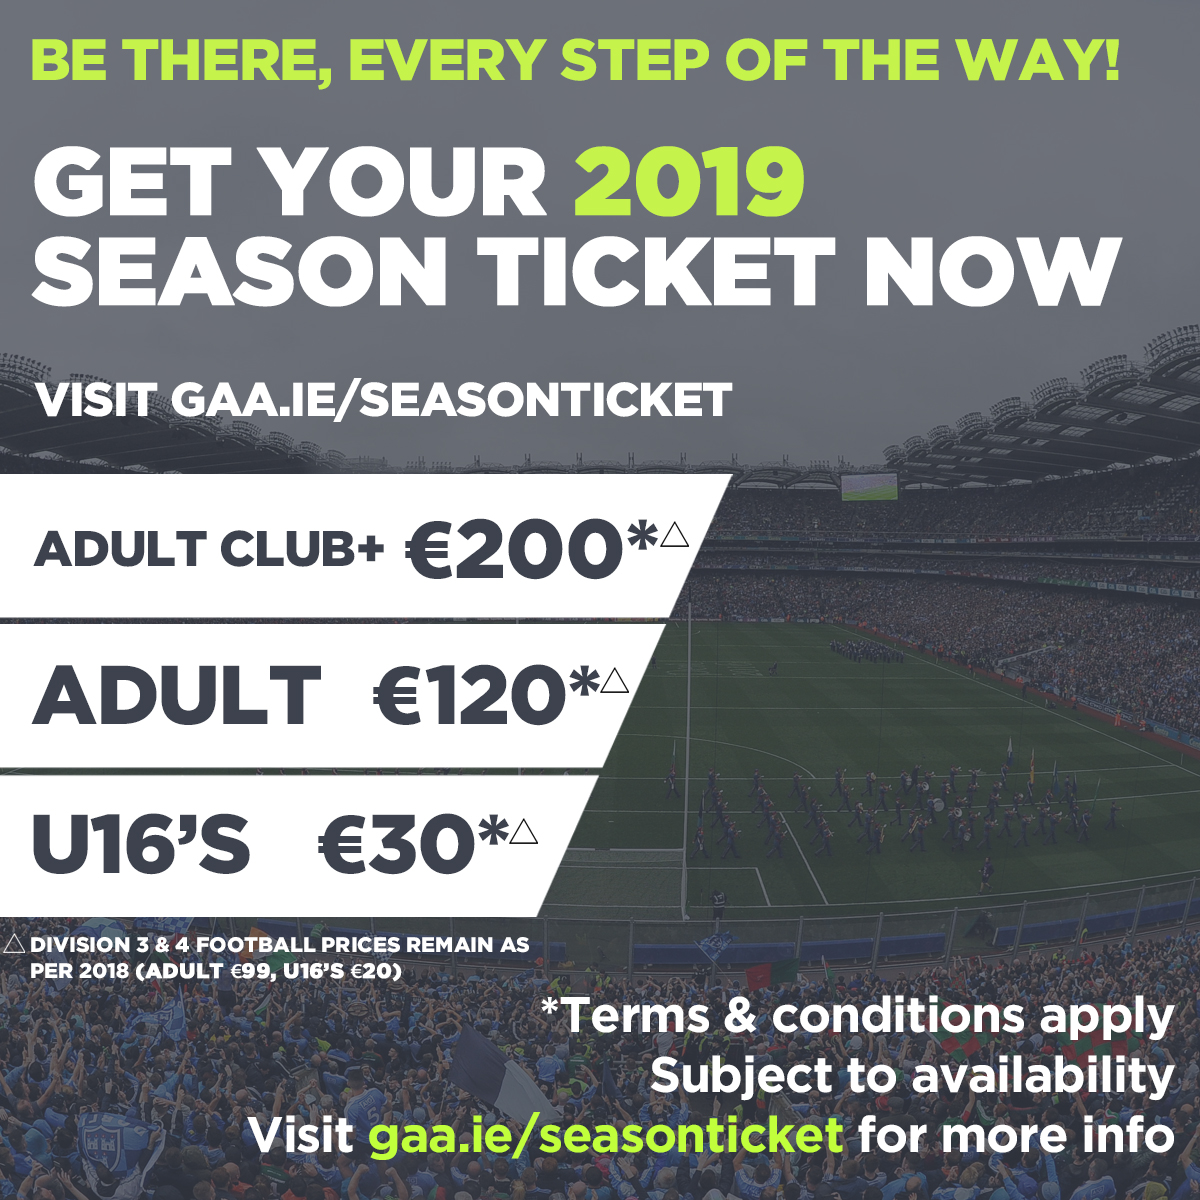 2019 Season ticket